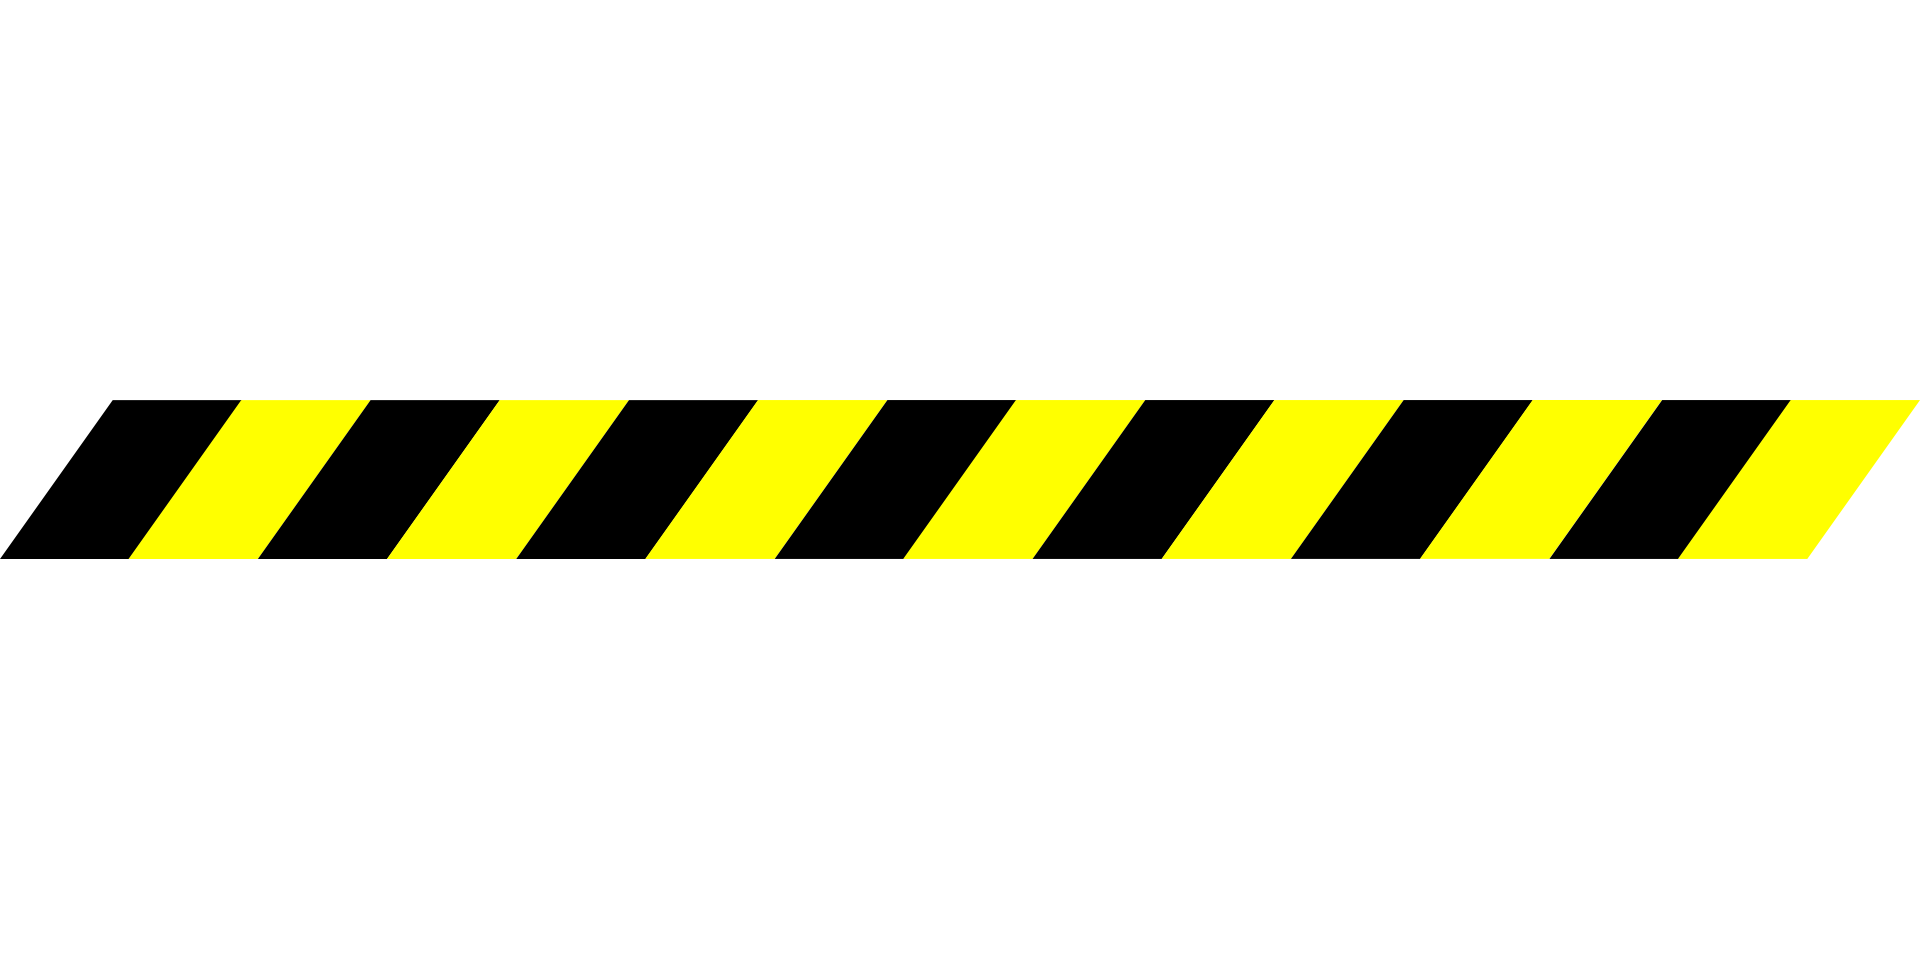 Warning tape png. Barricade clip art police